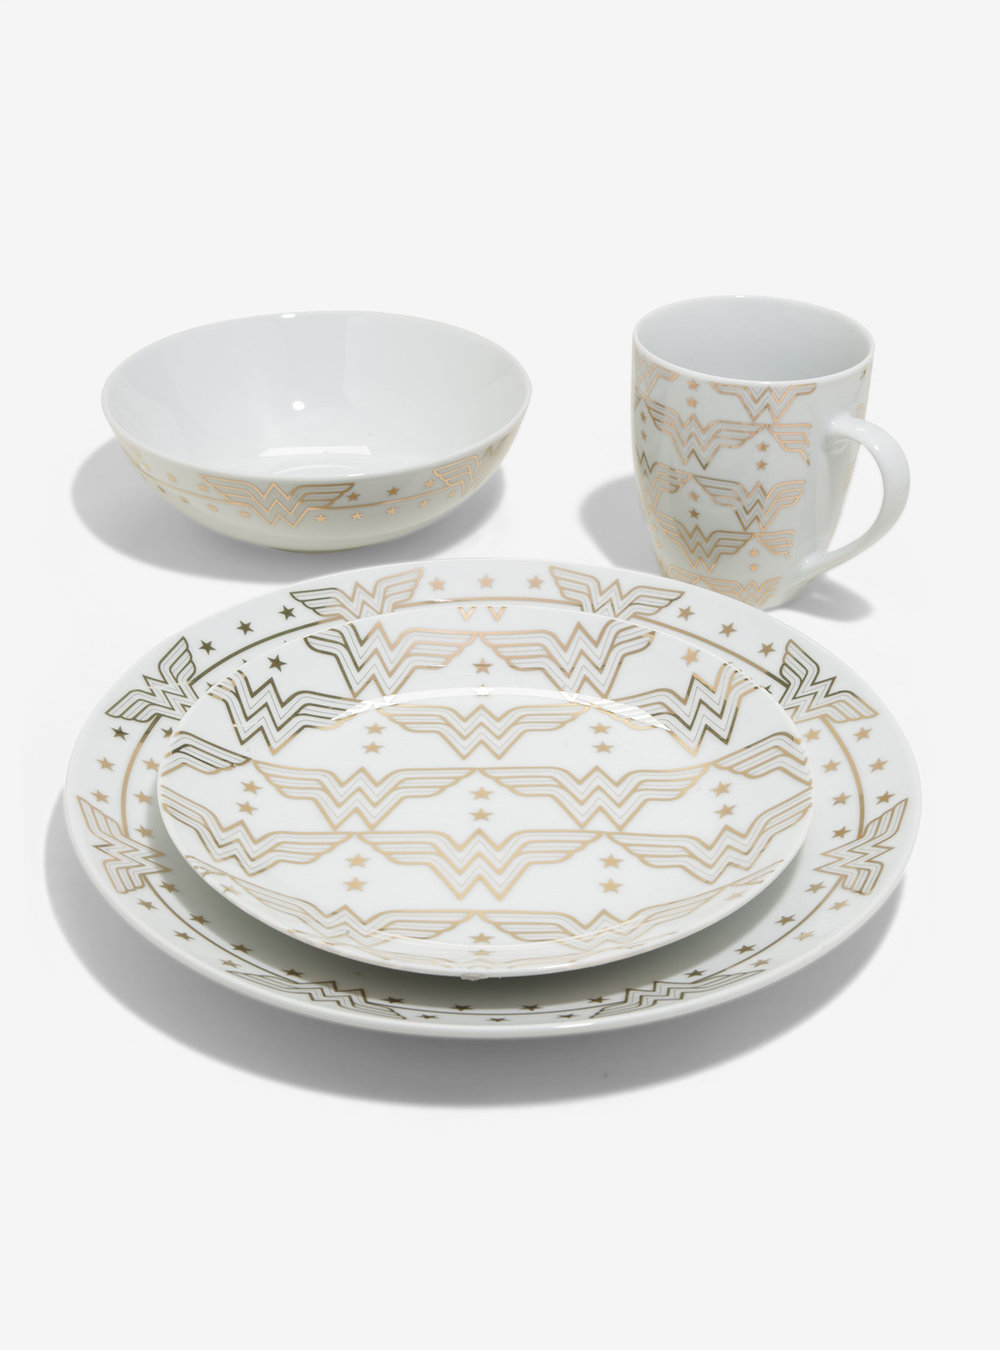 WW dining set.jpg